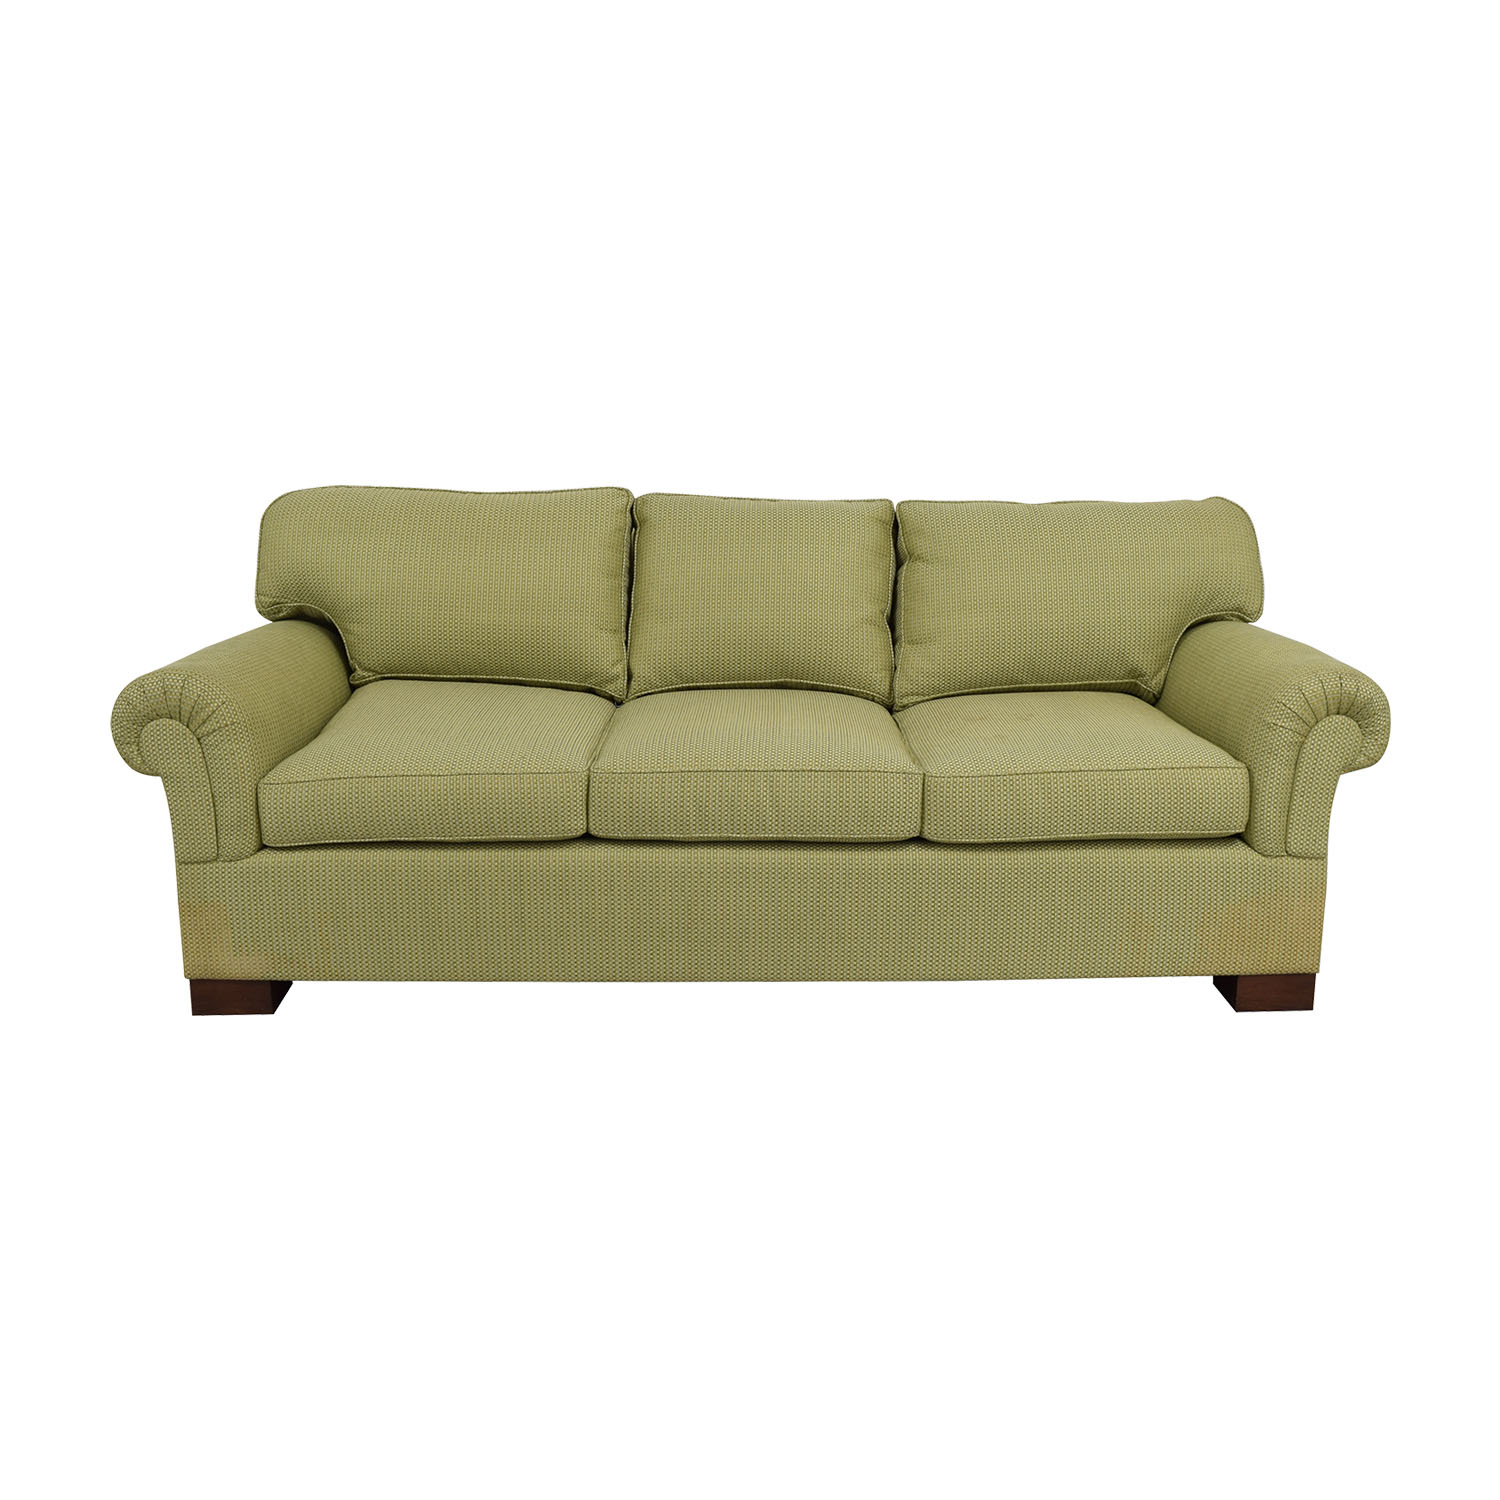 Marvelous 90 Off Furniture Masters Furniture Masters Green Three Seater Sofa Sofas Pabps2019 Chair Design Images Pabps2019Com